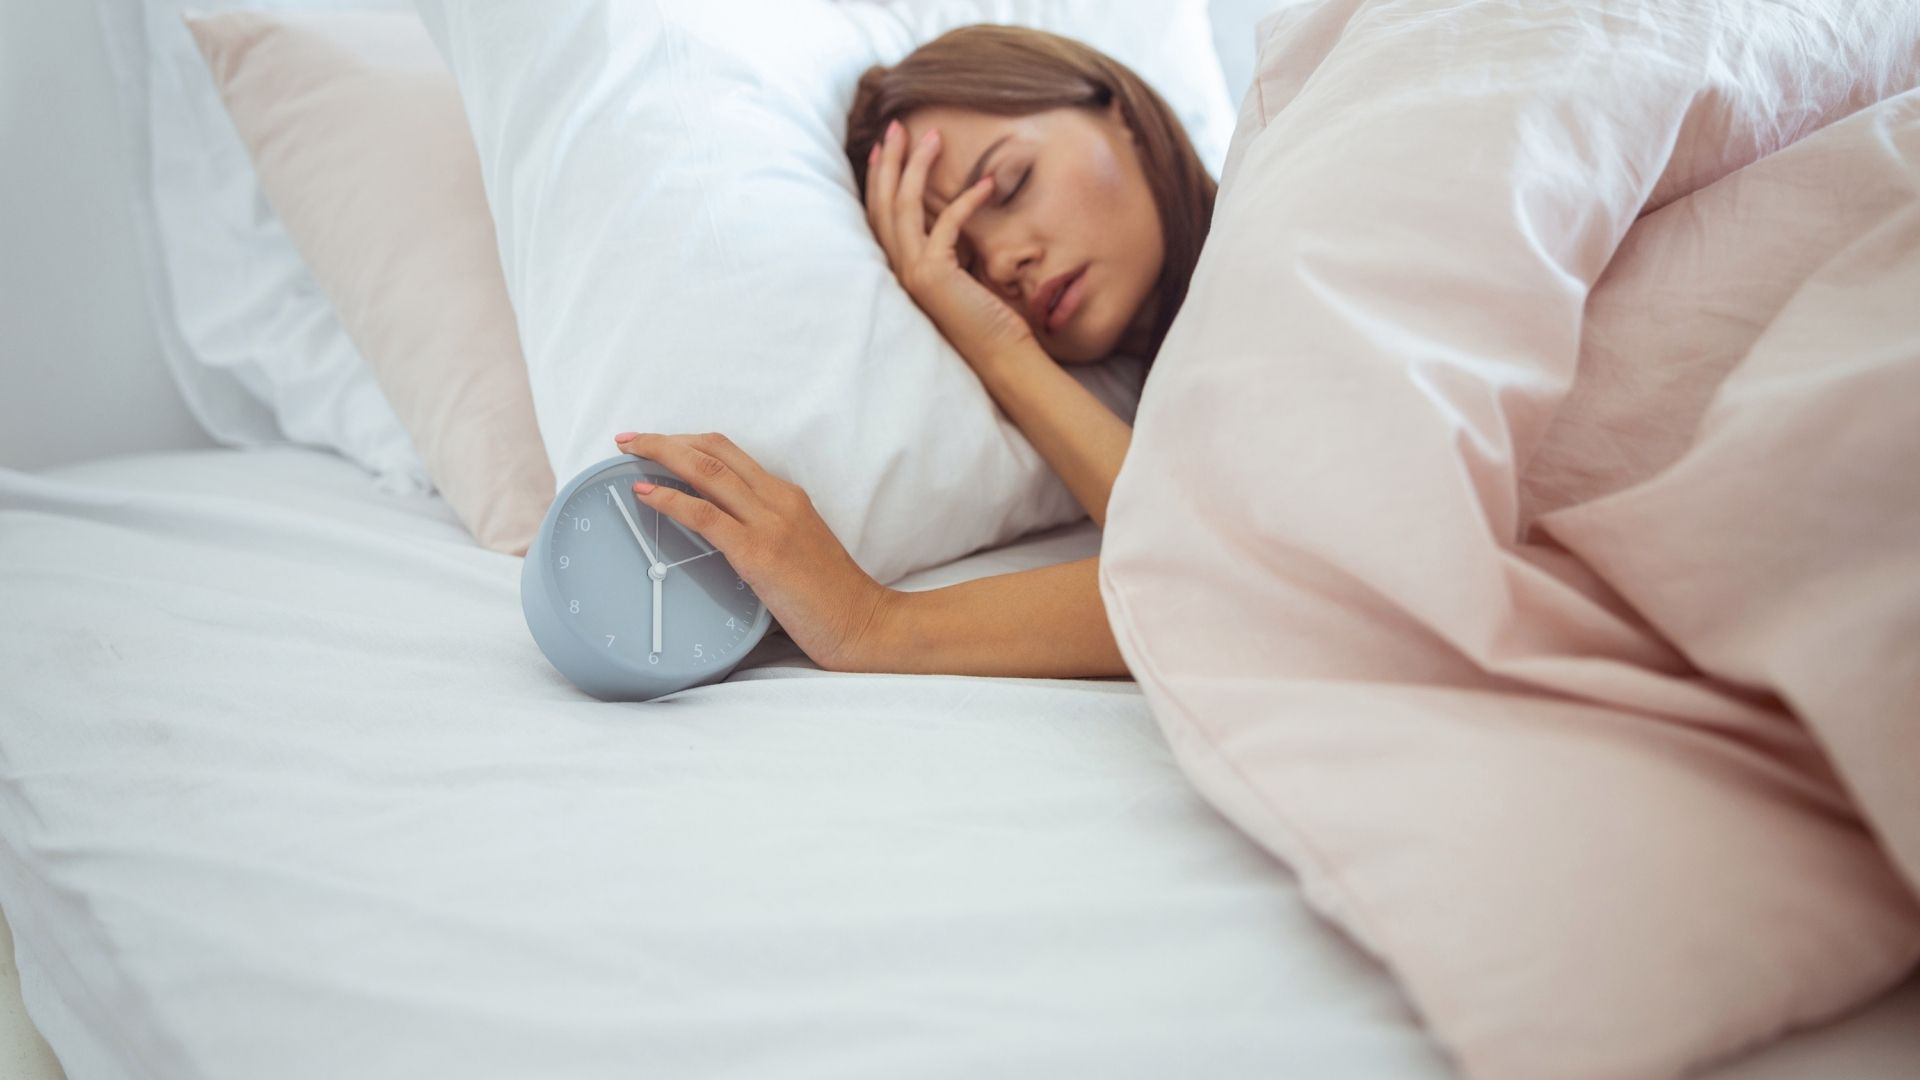 wake up tired - Do you wake up and feel tired all the time?